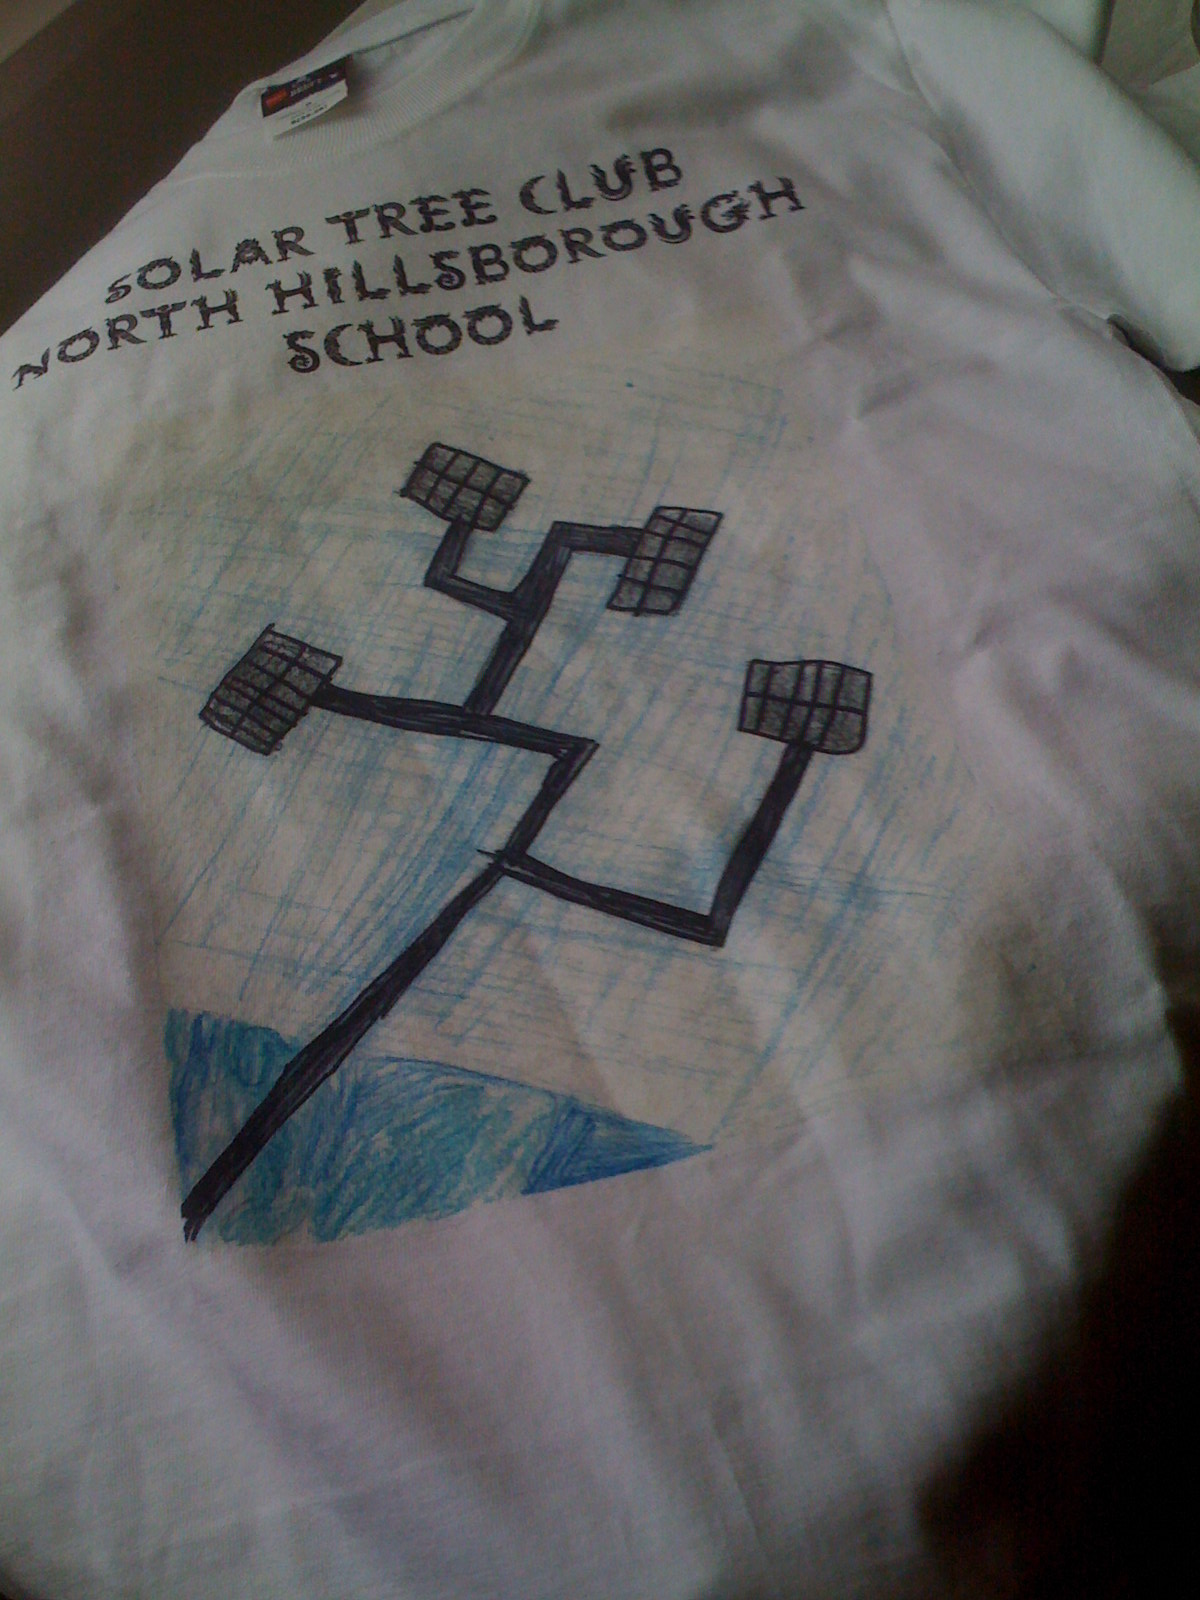 Solar Tree Club t shirt